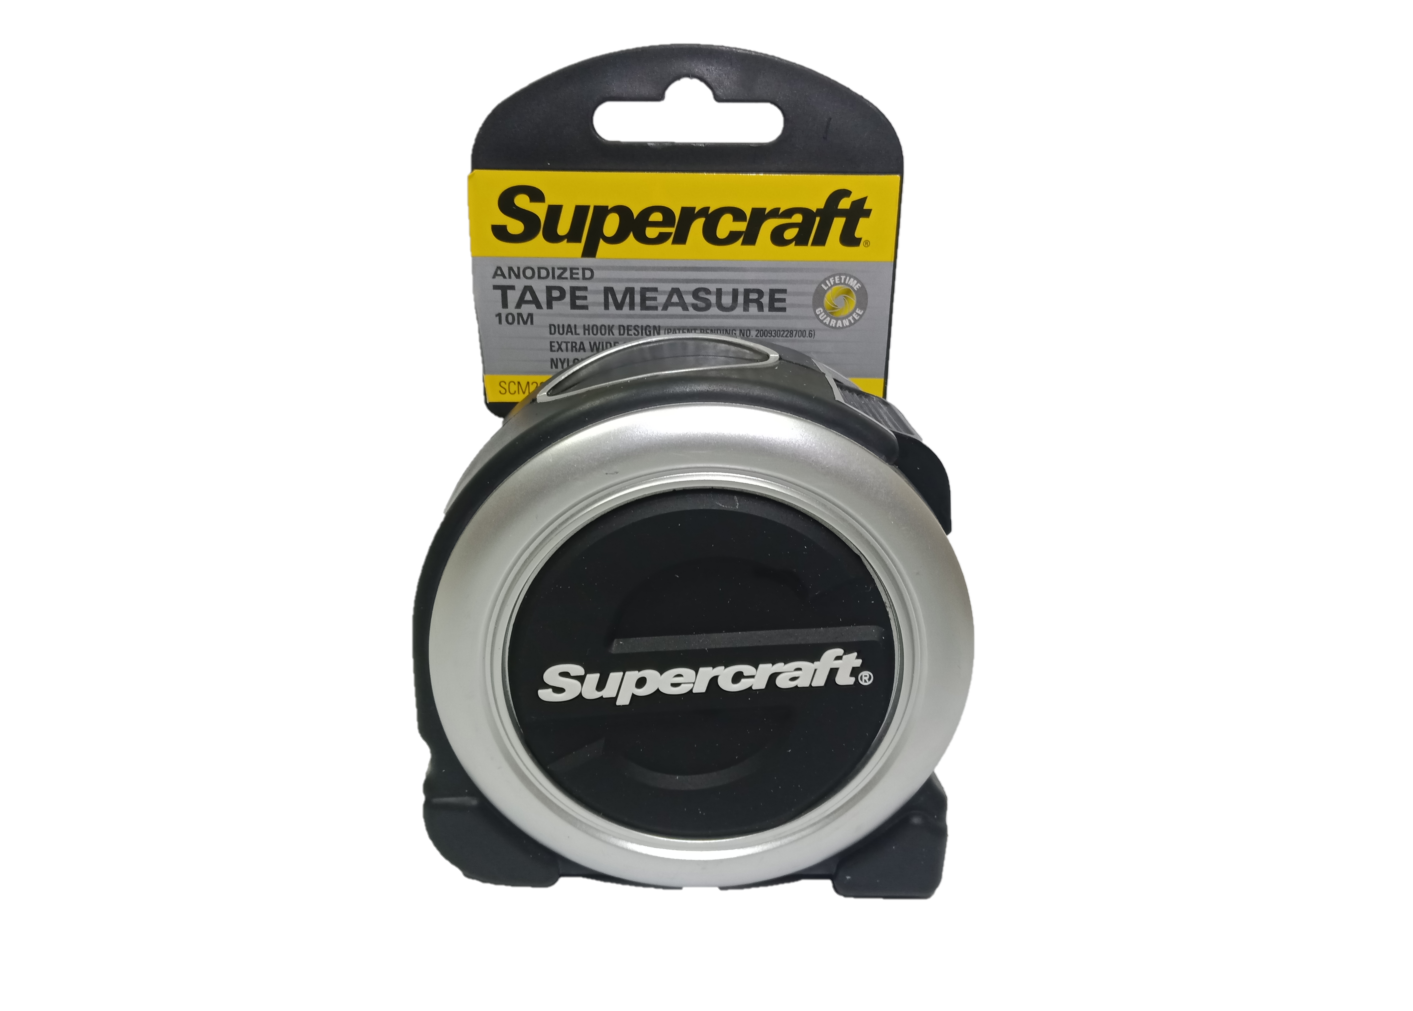 Anodized Tape Measure 10m...